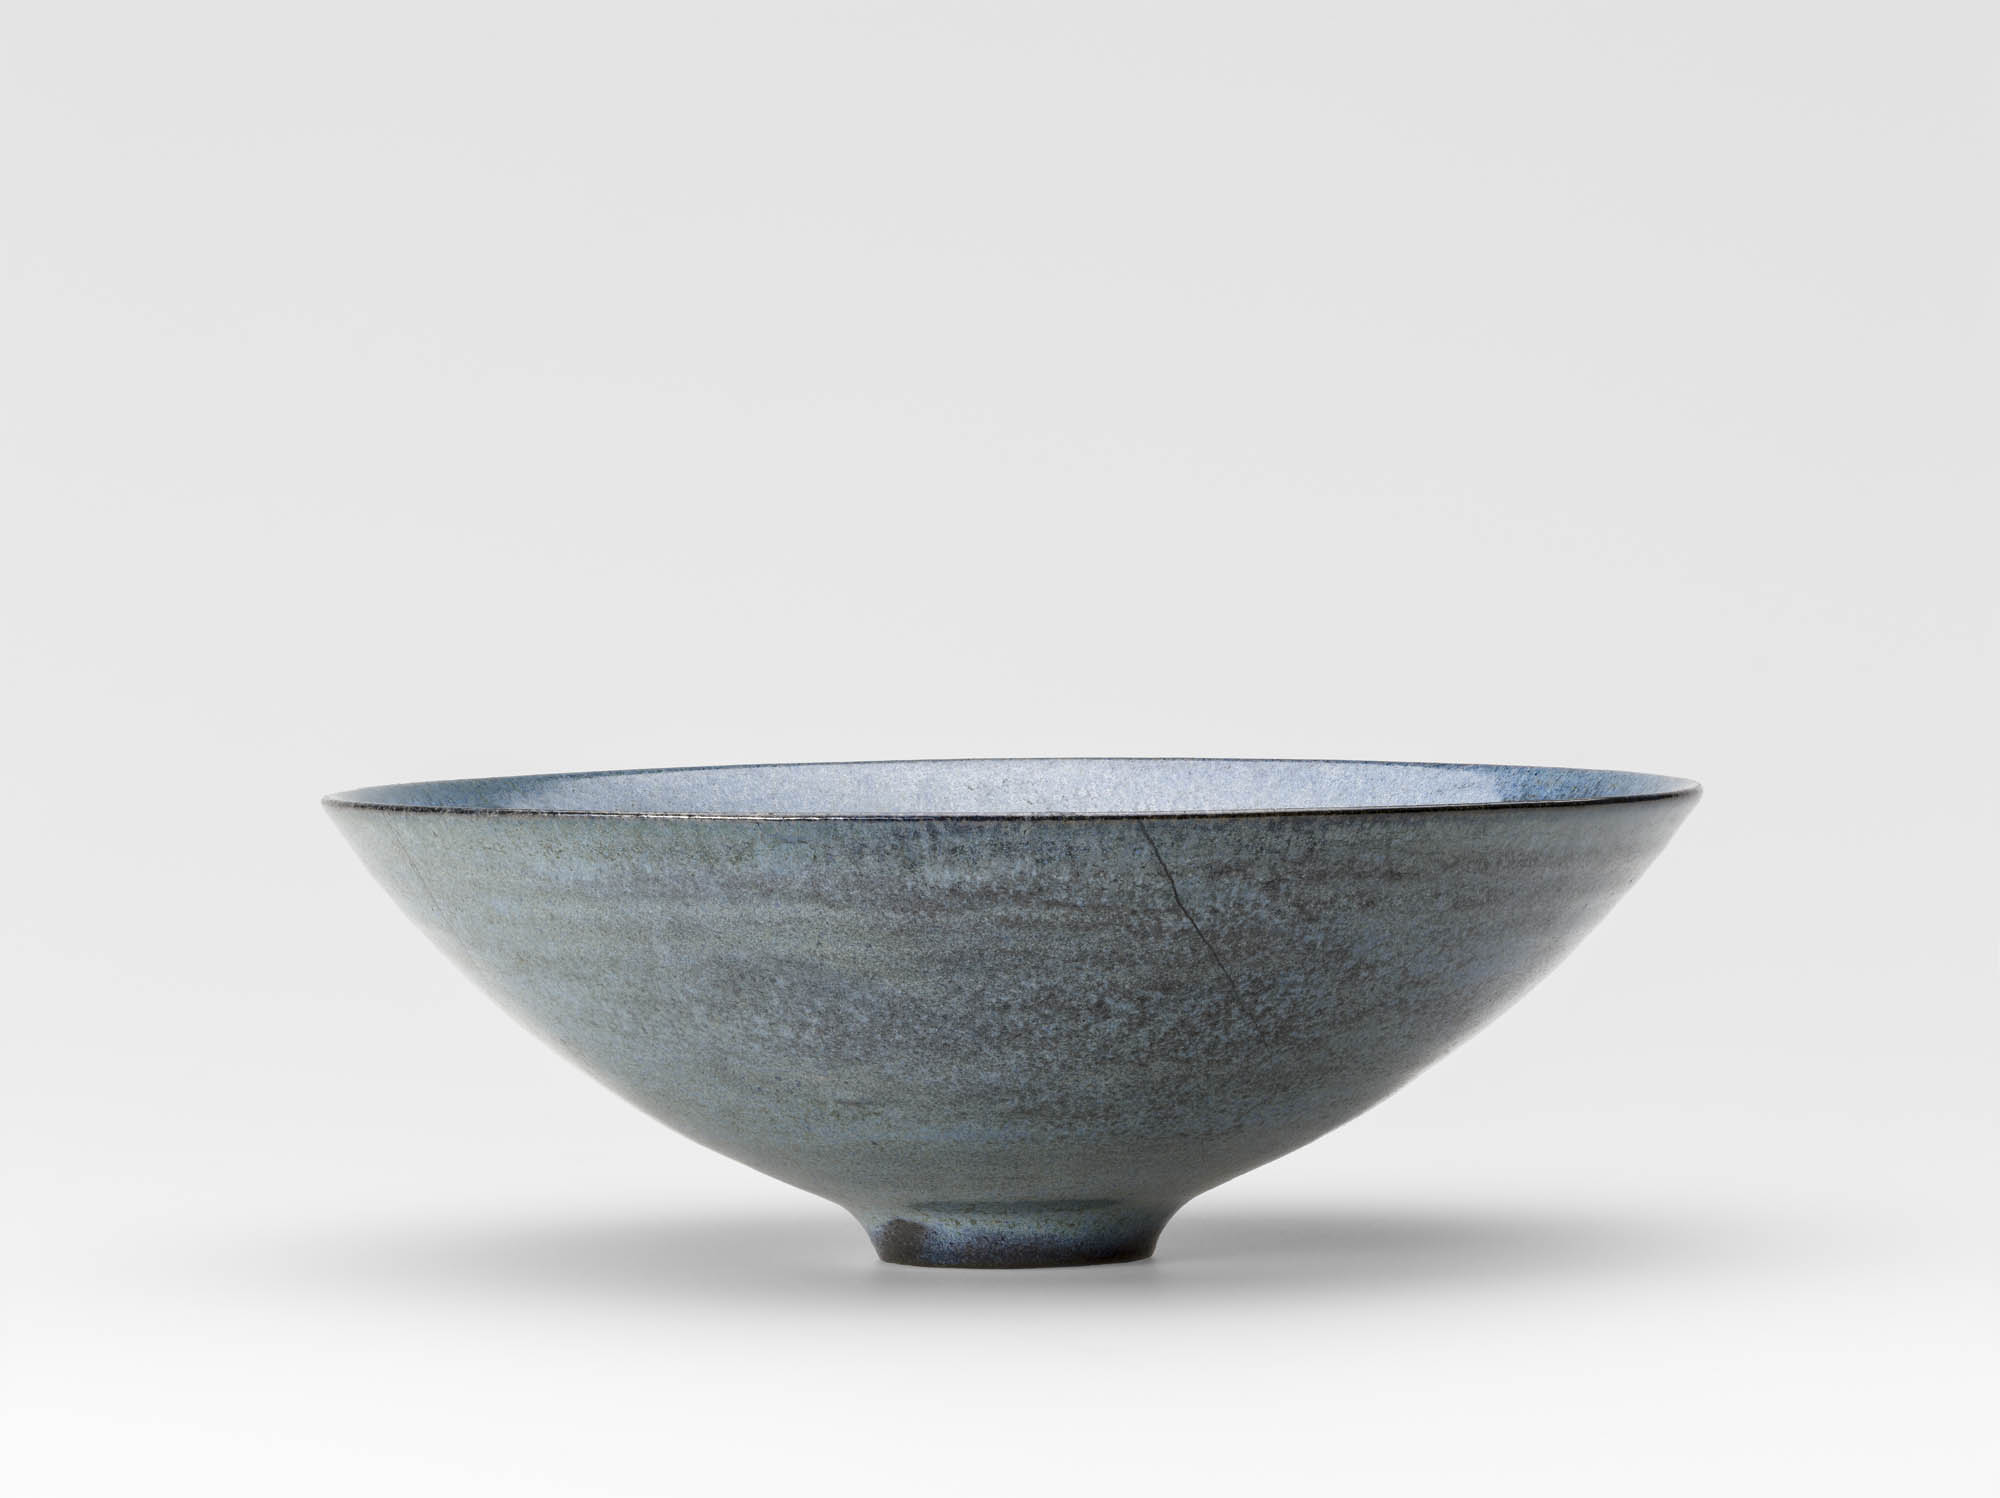 (untitled) Gertrud Natzler Otto Natzler Decorative bowl